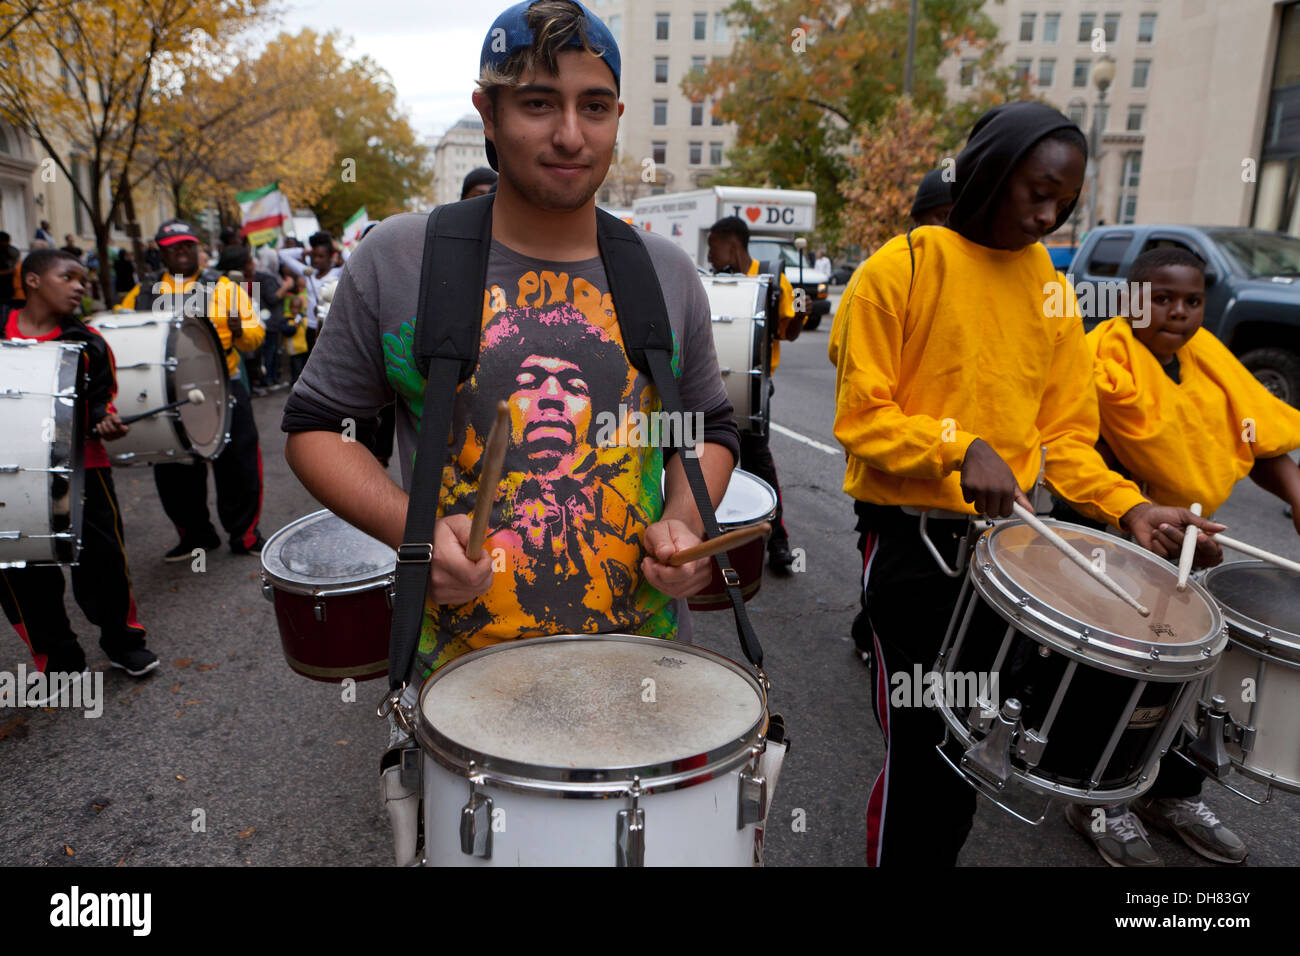 Snare drummer  in parade - Stock Image